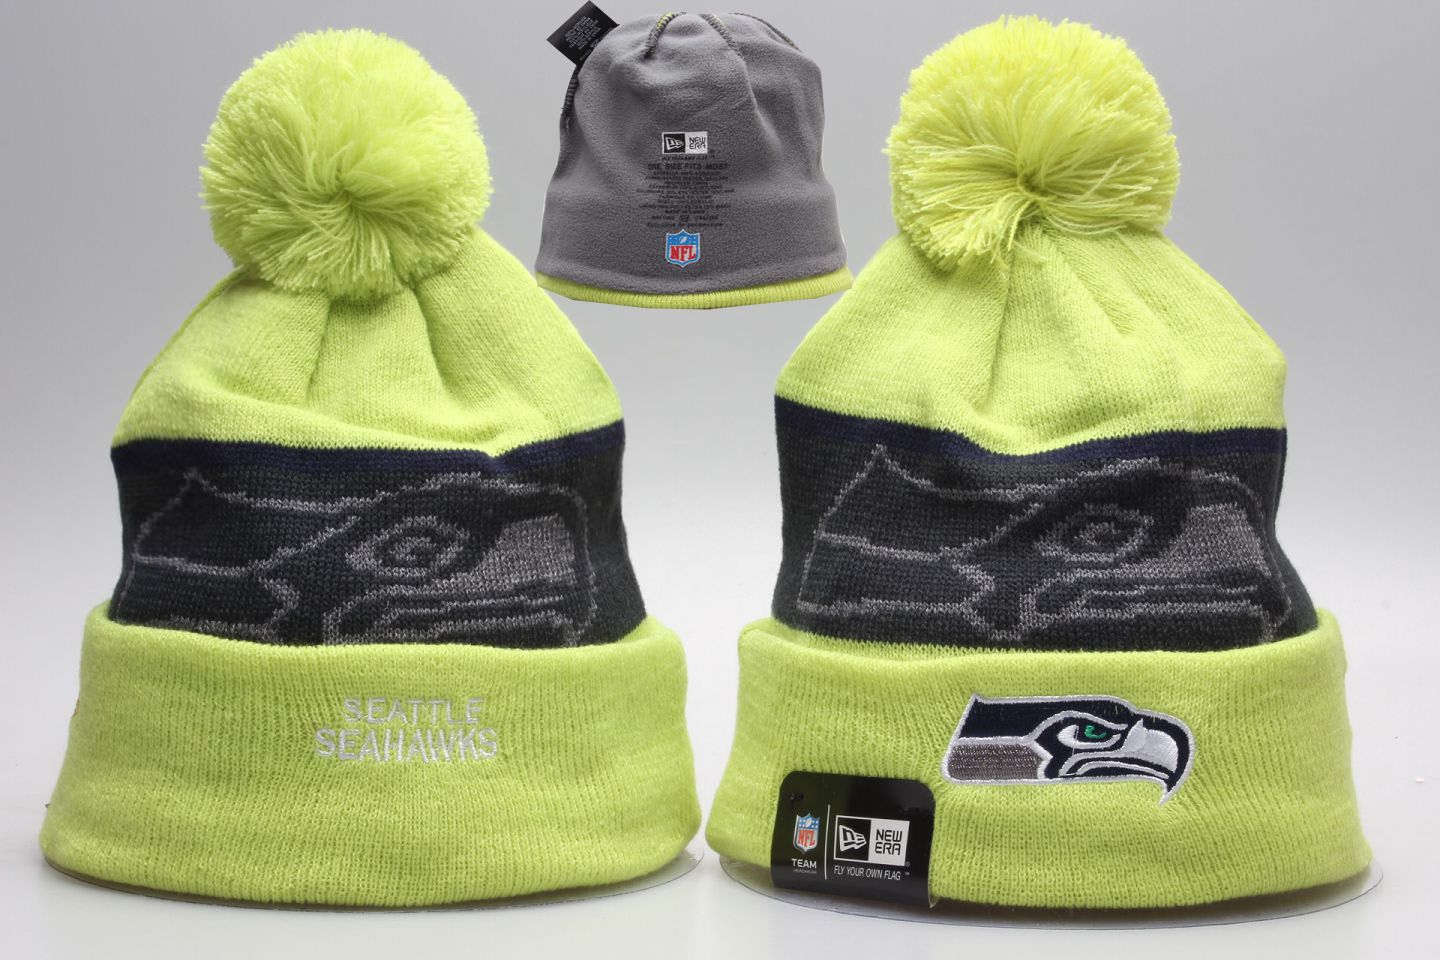 NFL Seattle Seahawks Beanie hot hat1